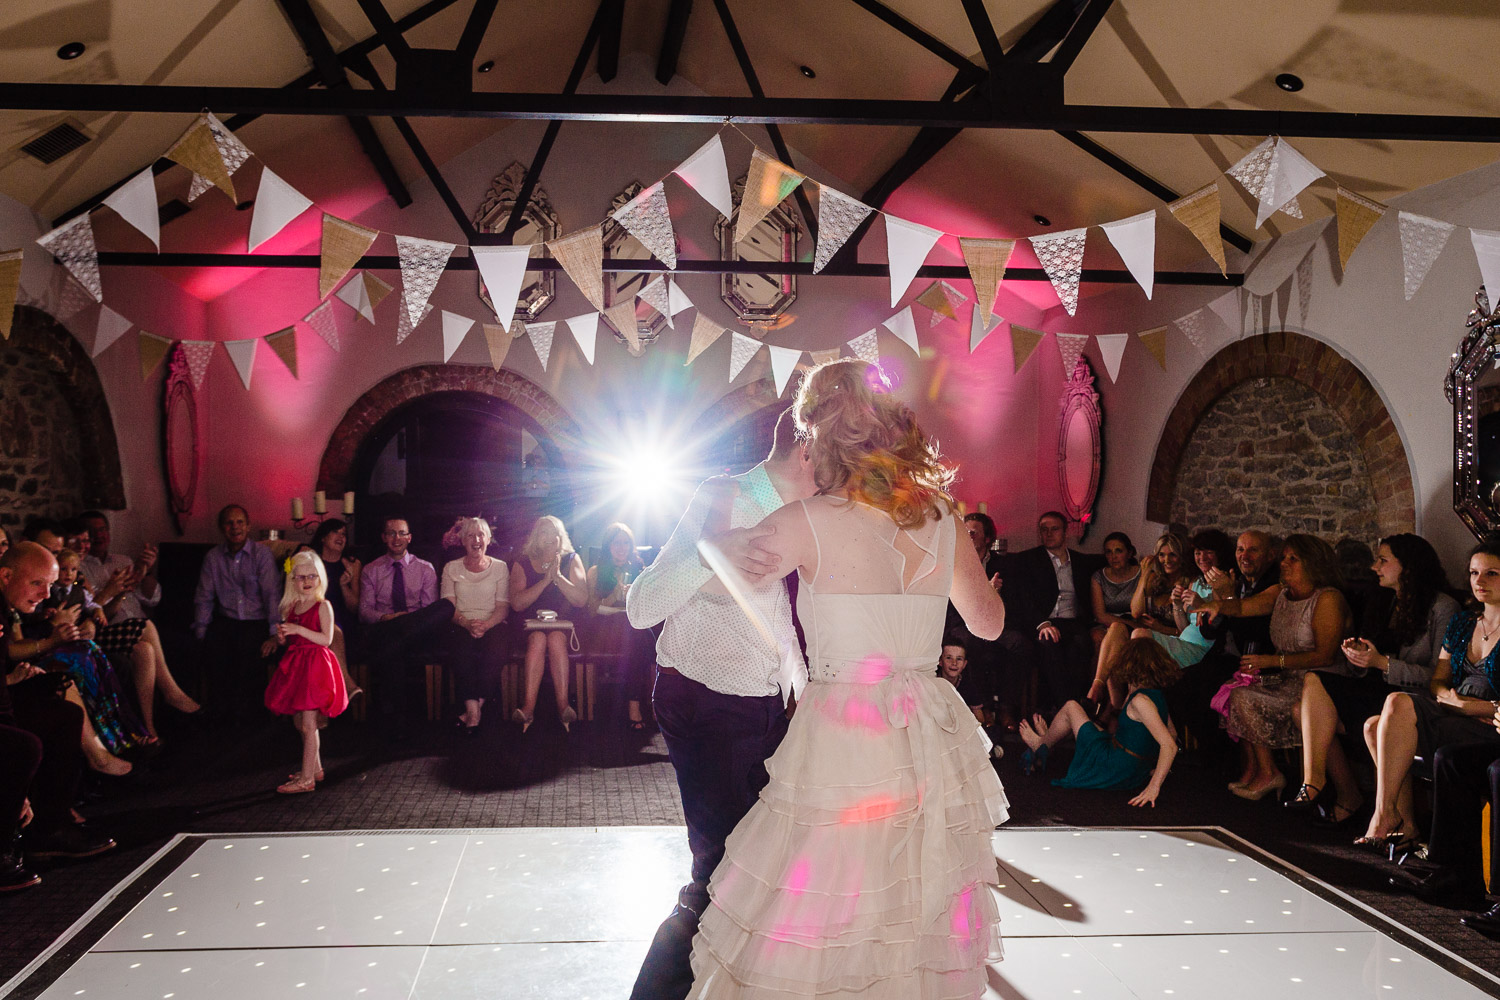 Bride and groom dancing on the lit up dancefloor for their first dance at Hotel du Vin Bristol